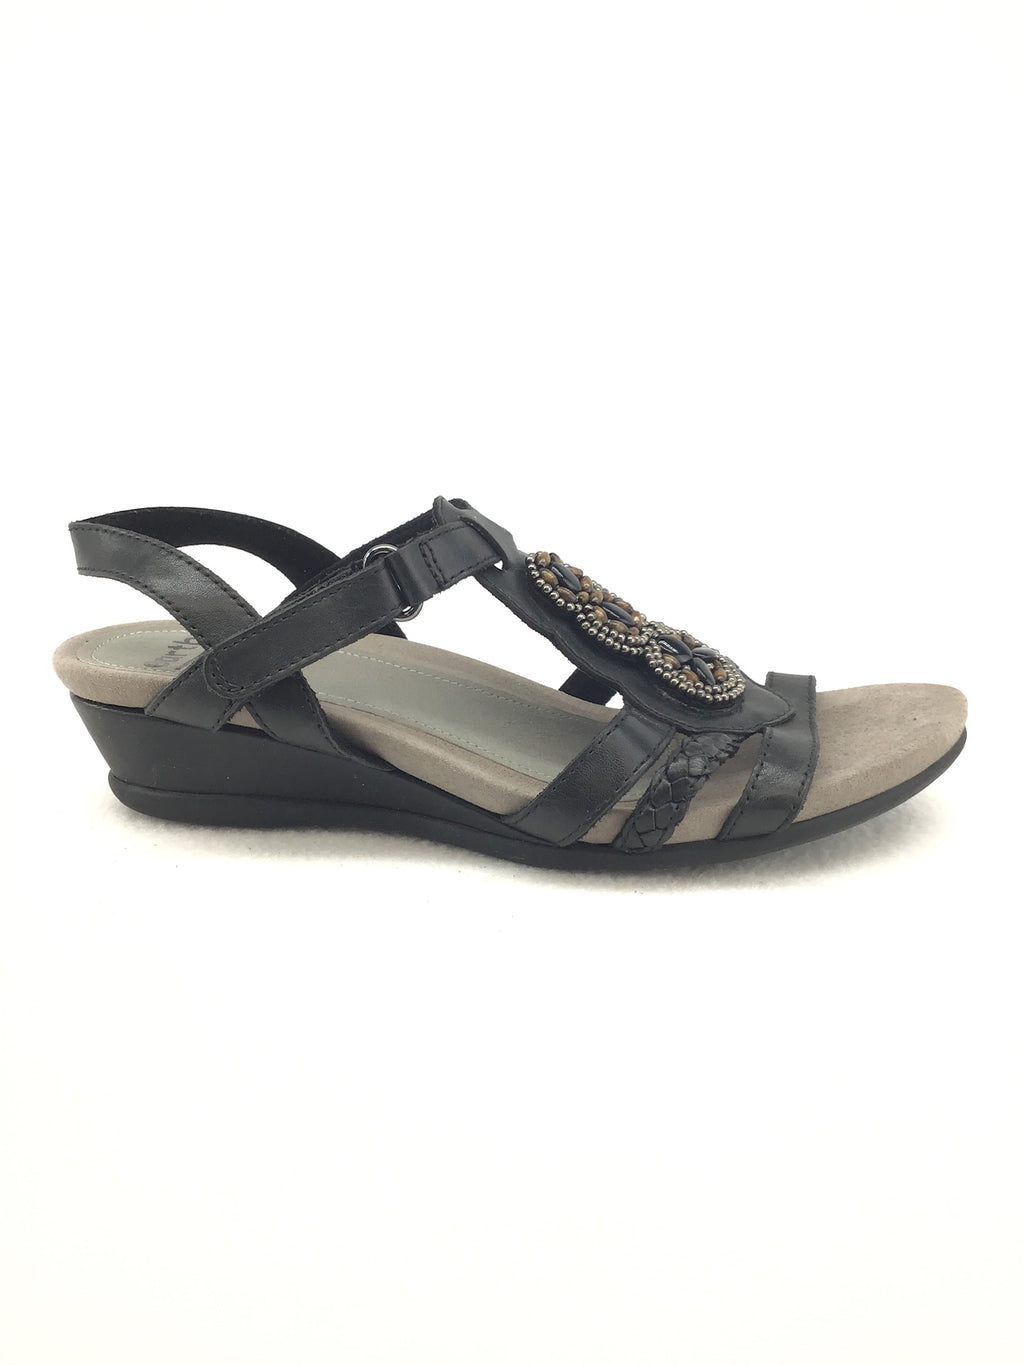 Earth Pisa Falmouth Sandals Size 8M